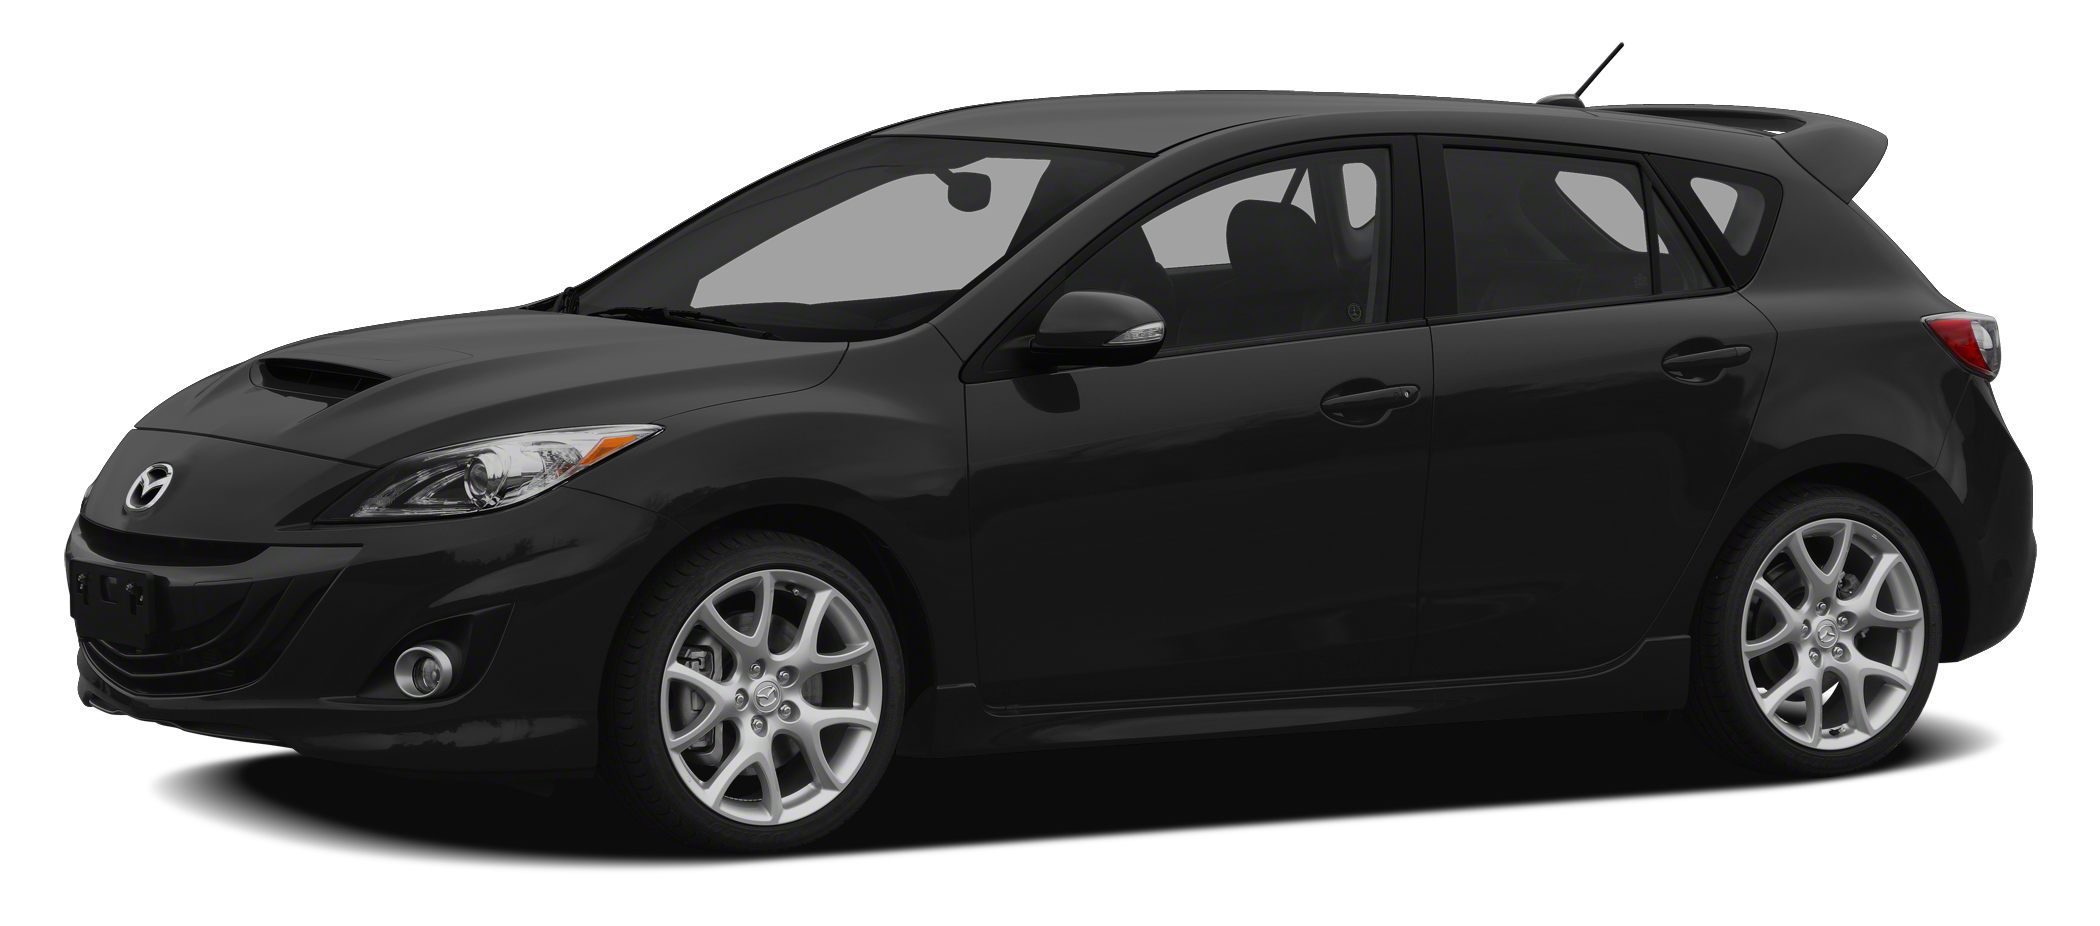 2012 Mazda MAZDASPEED3 Touring  WHEN IT COMES TO EXCELLENCE IN USED CAR SALES YOU KNOW YOURE